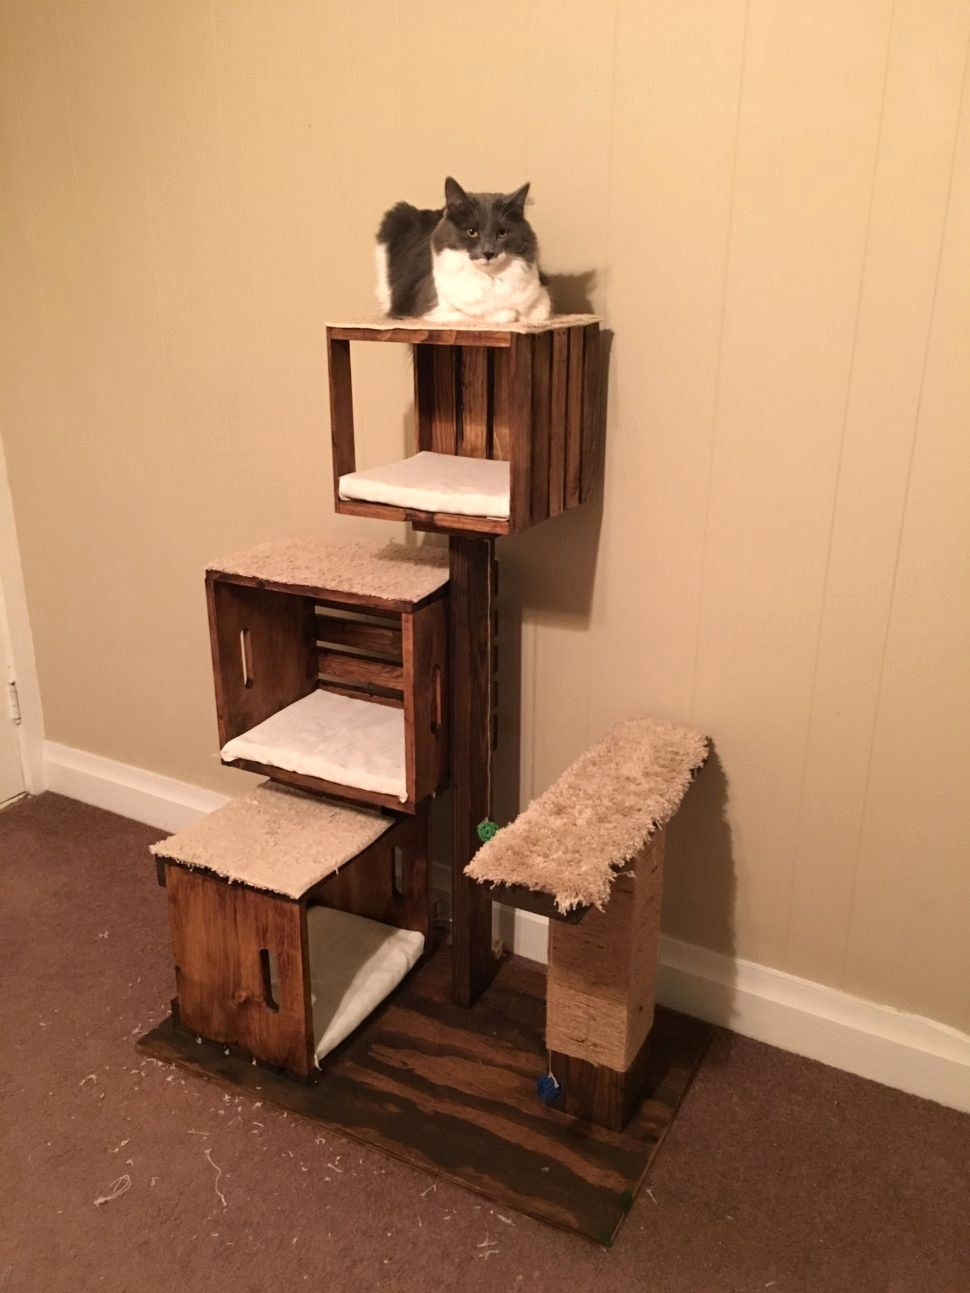 25+ Cool Ideas for Cat Trees, Towers, and Other Structures